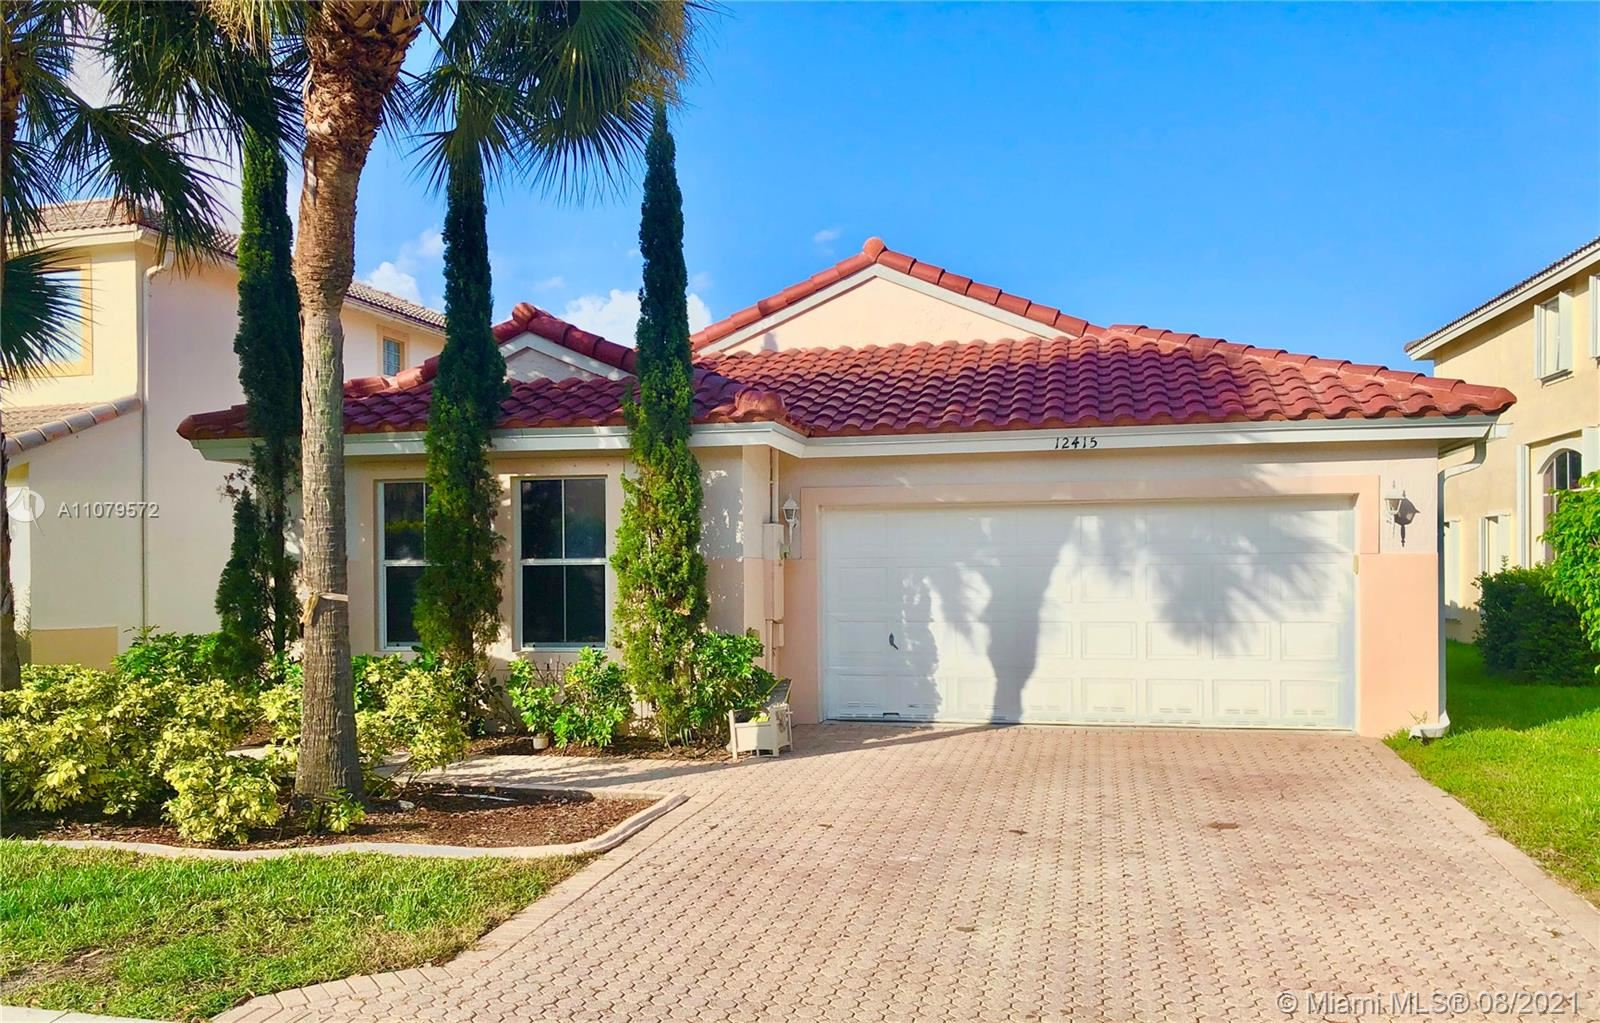 12415 NW 56th Ct, Coral Springs, FL 33076 - #: A11079572